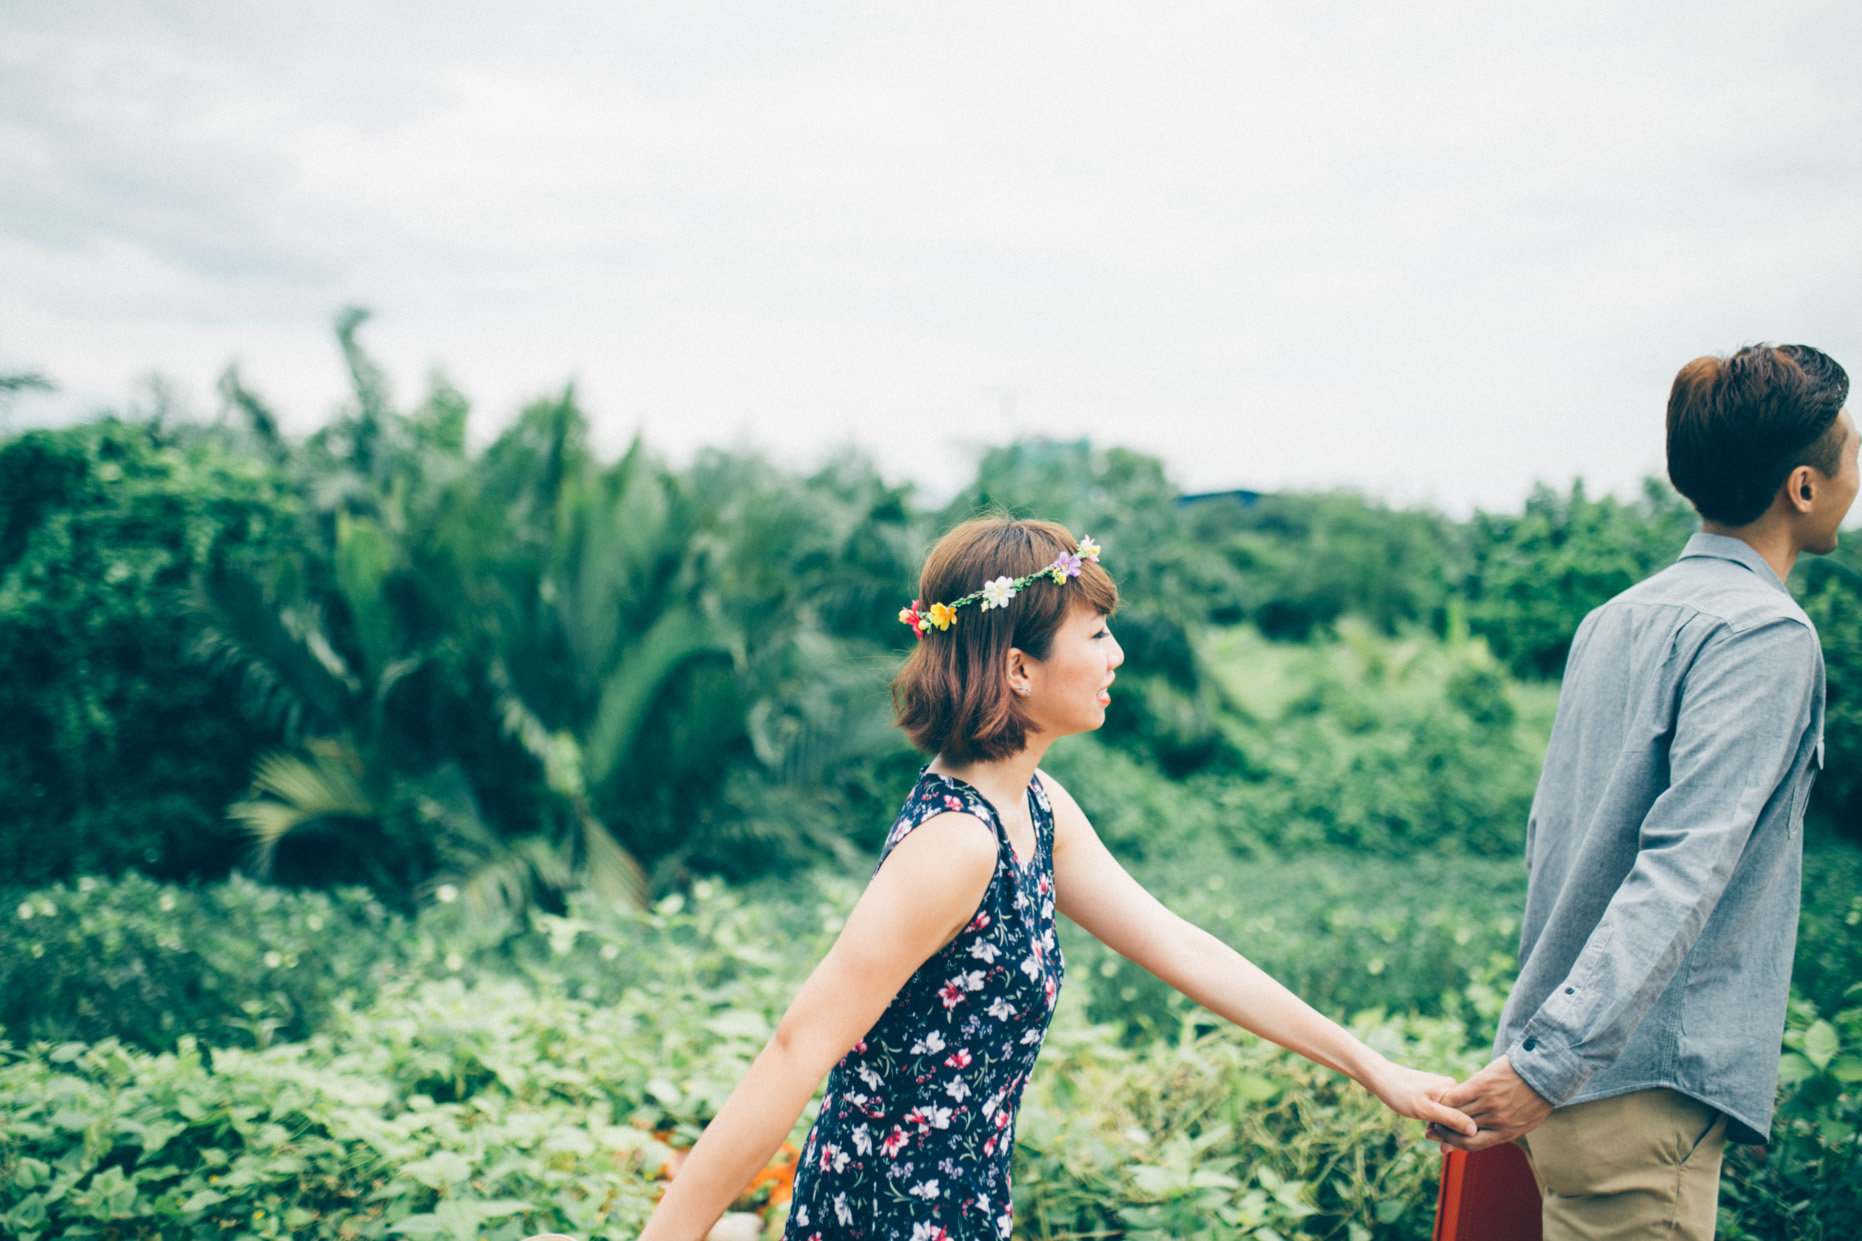 33-hellojanelee-singapore-malaysia-wedding-photographer-prewedding-carrie-sekinchan